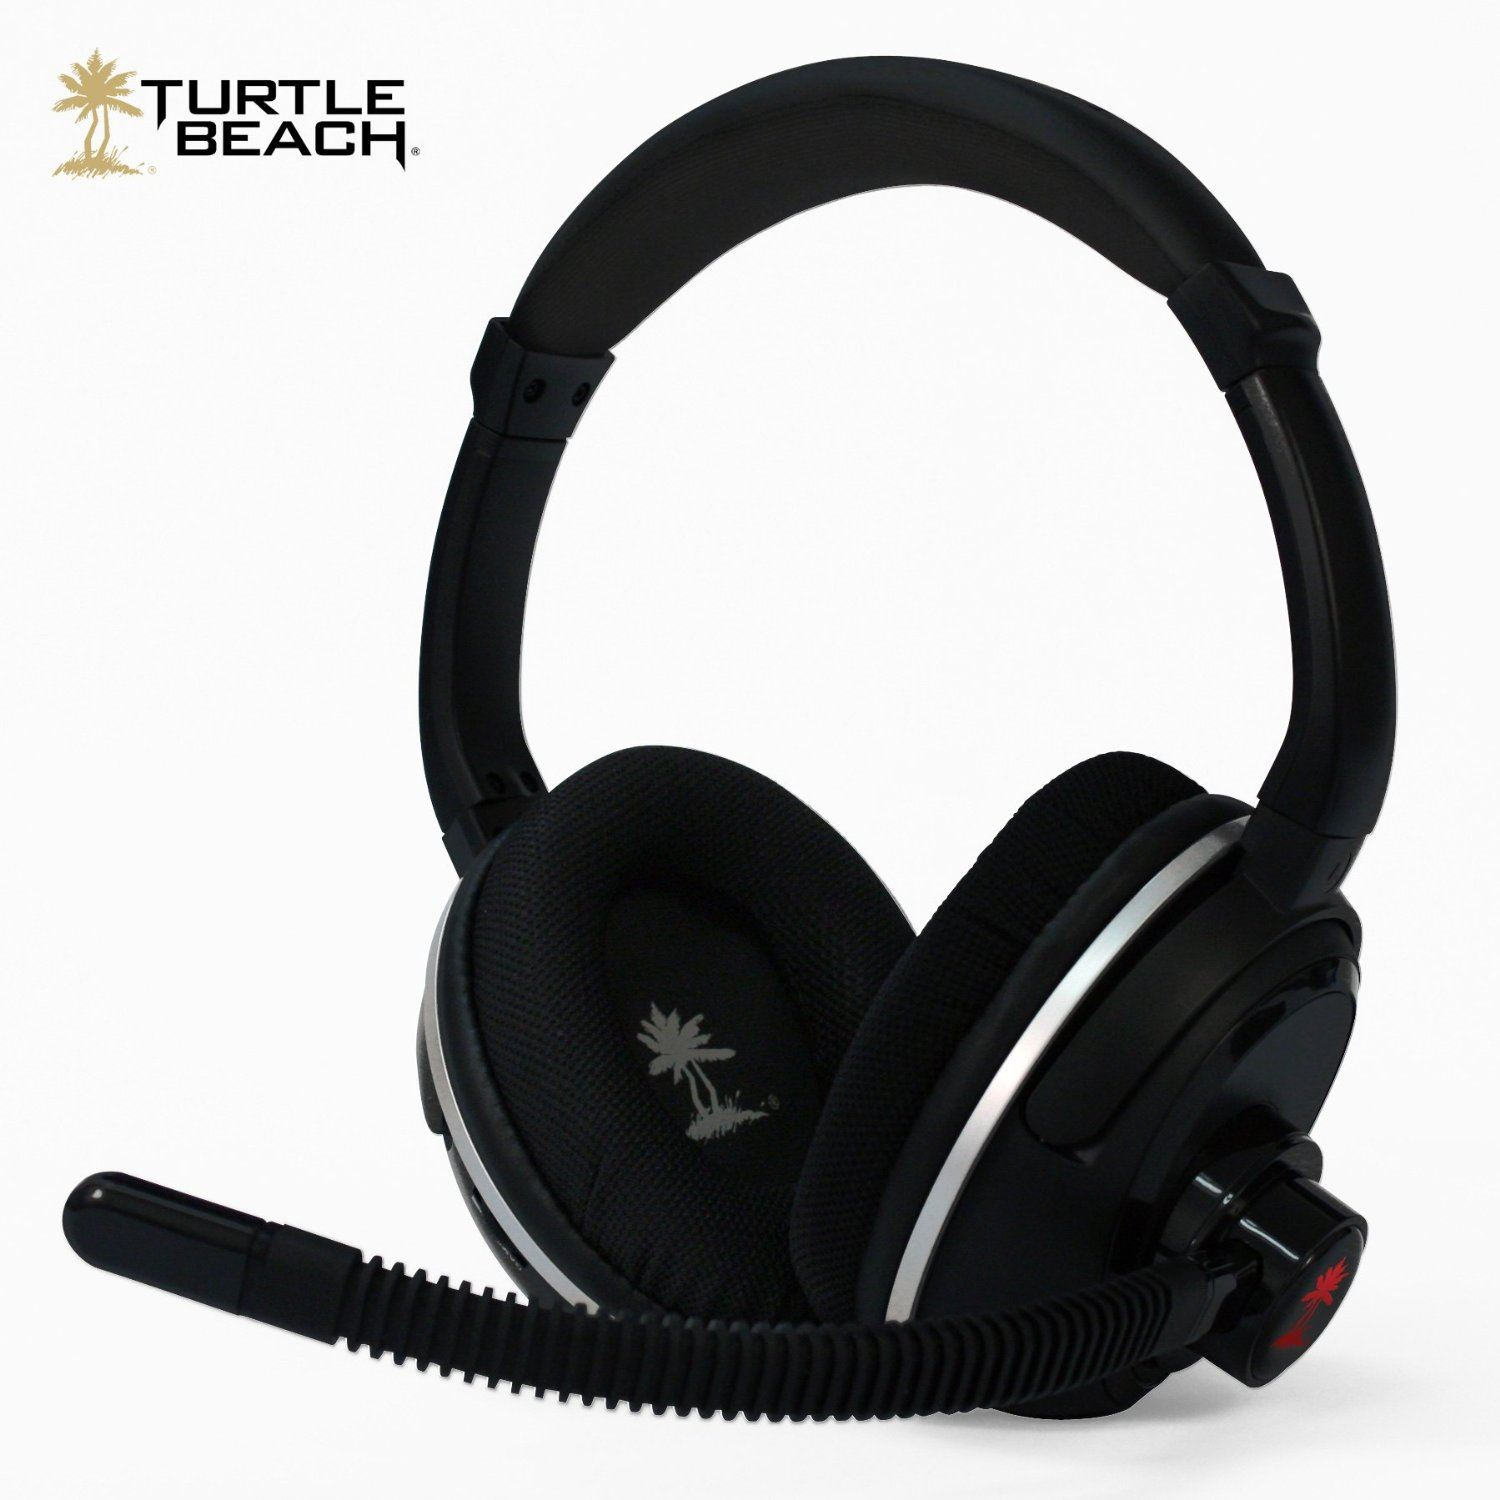 turtle beach px3 universal wireless gaming headset with. Black Bedroom Furniture Sets. Home Design Ideas